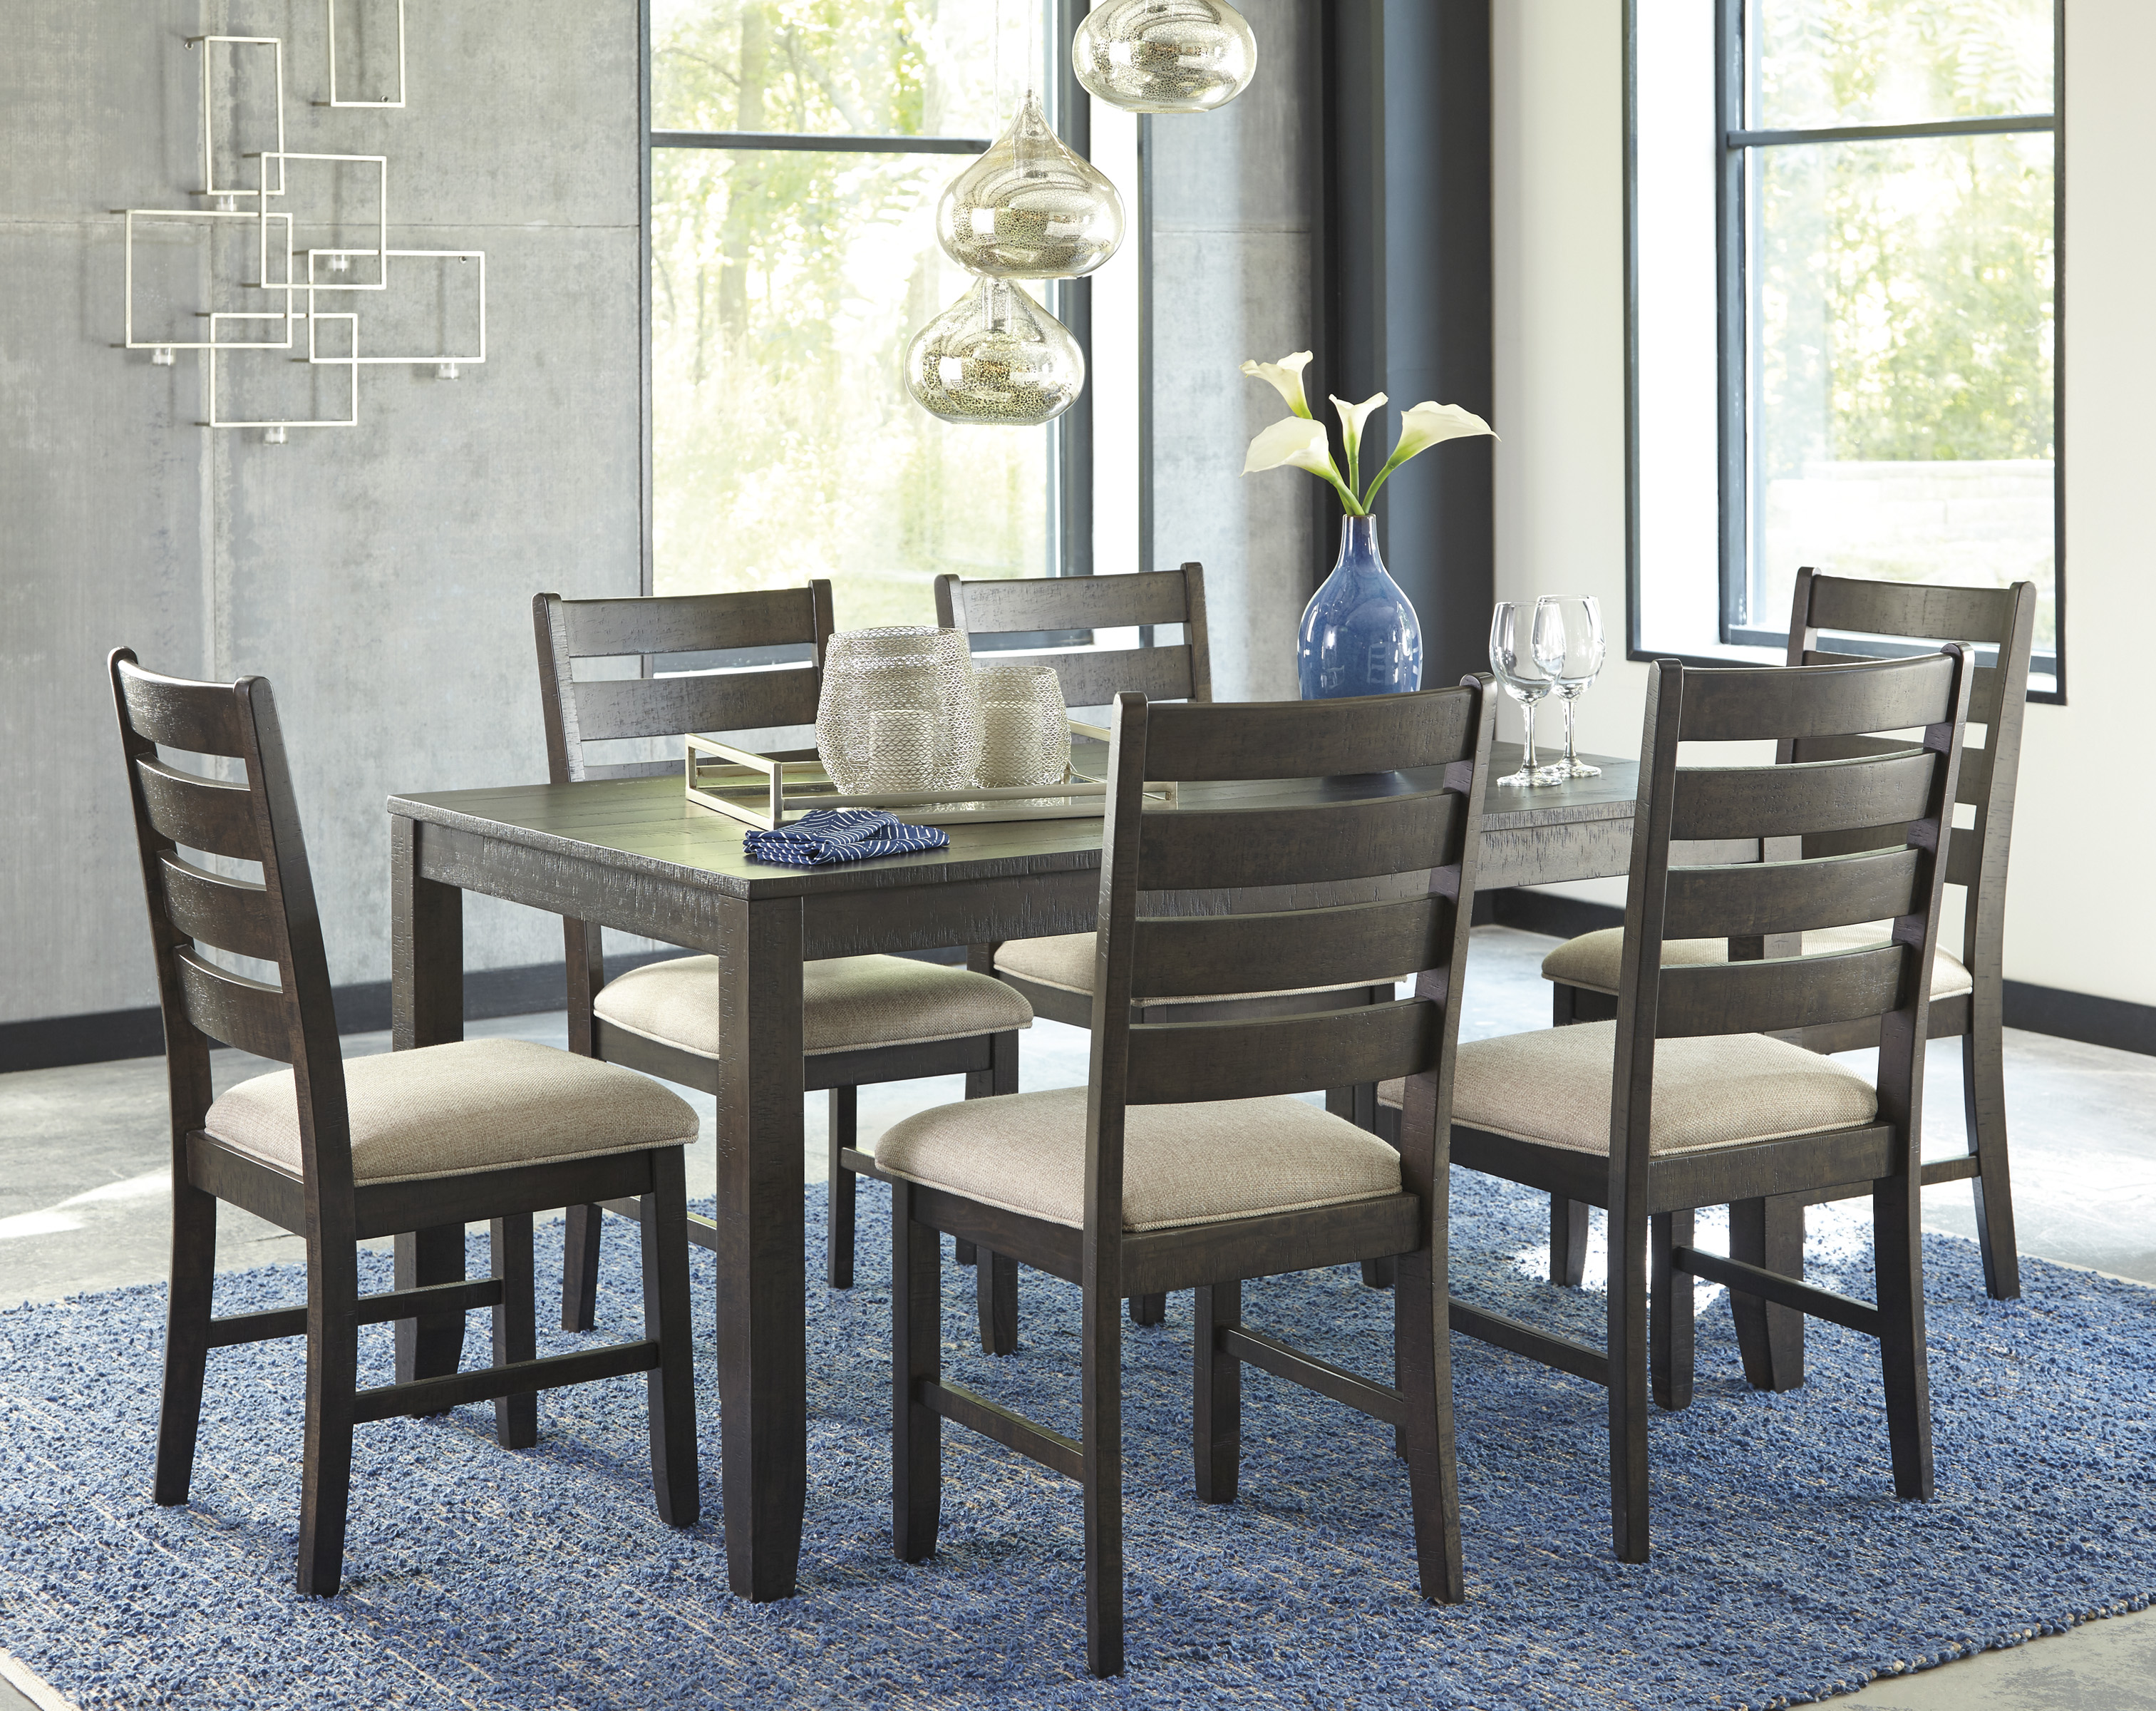 discount dining room furniture sets | ROKANE CASUAL 7 PC. DINING TABLE SET WITH SIX CHAIRS ...